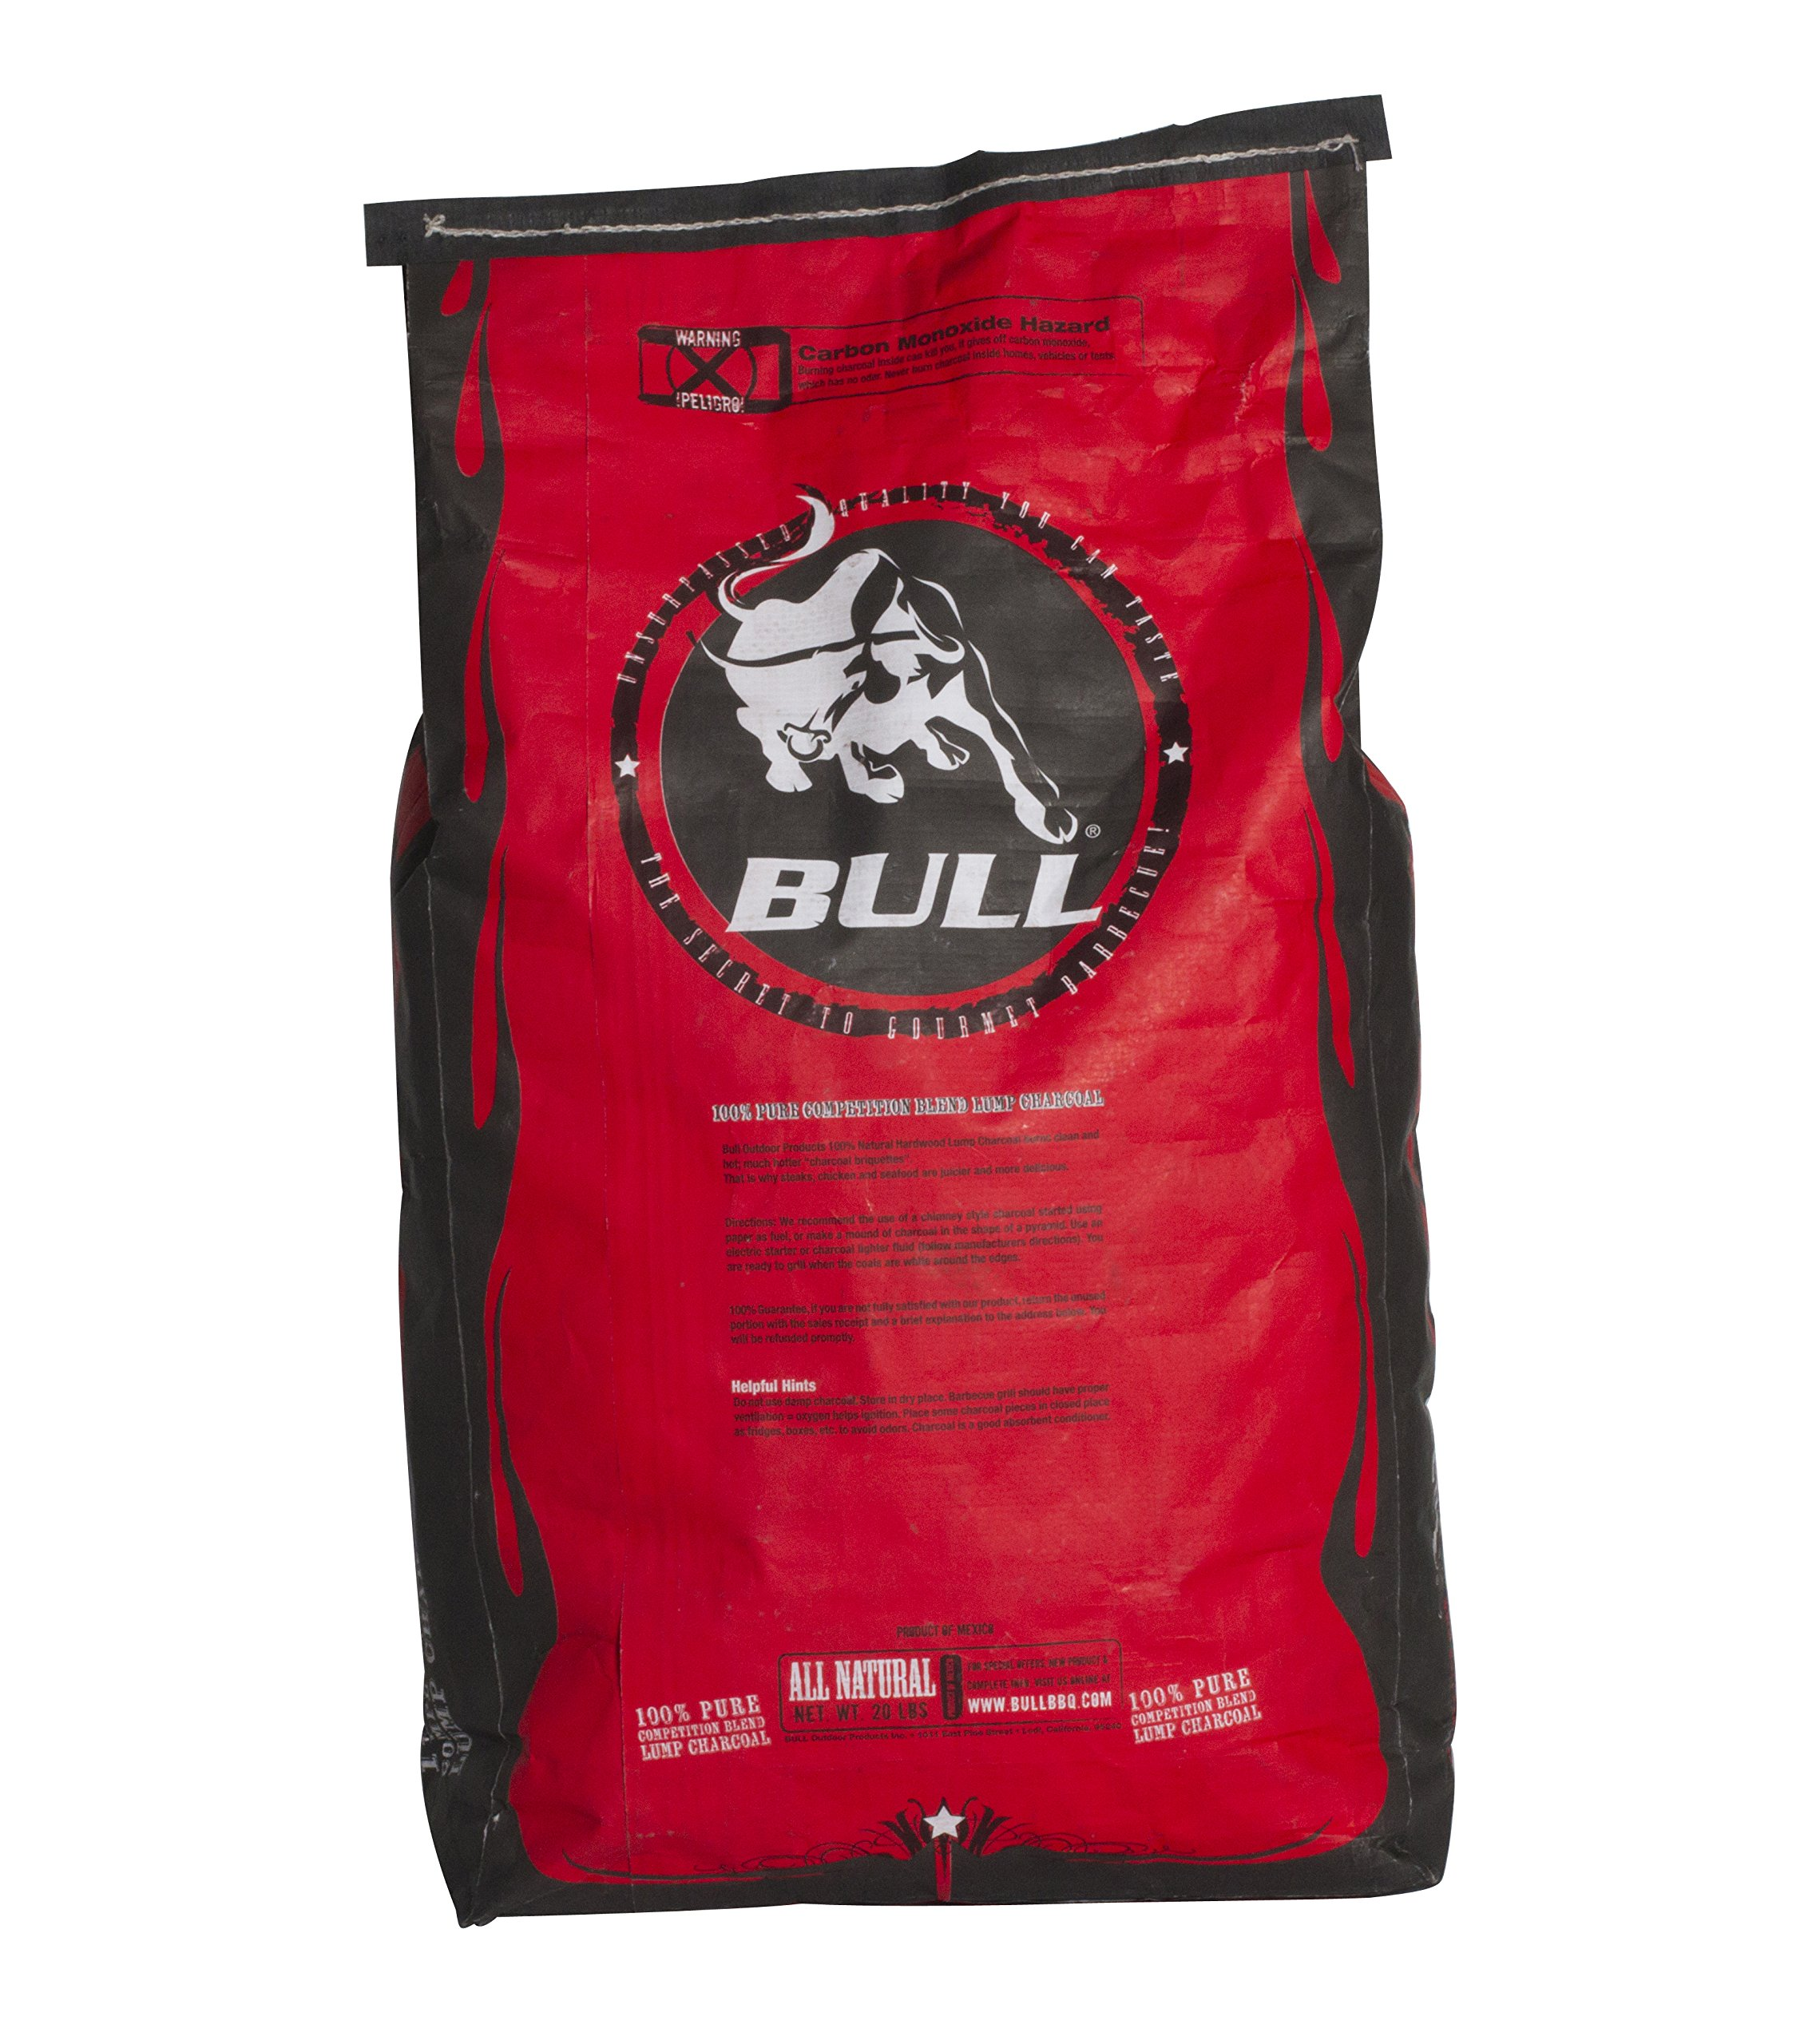 Bull Outdoor Products 100% Pure Competition Blend Lump Charcoal